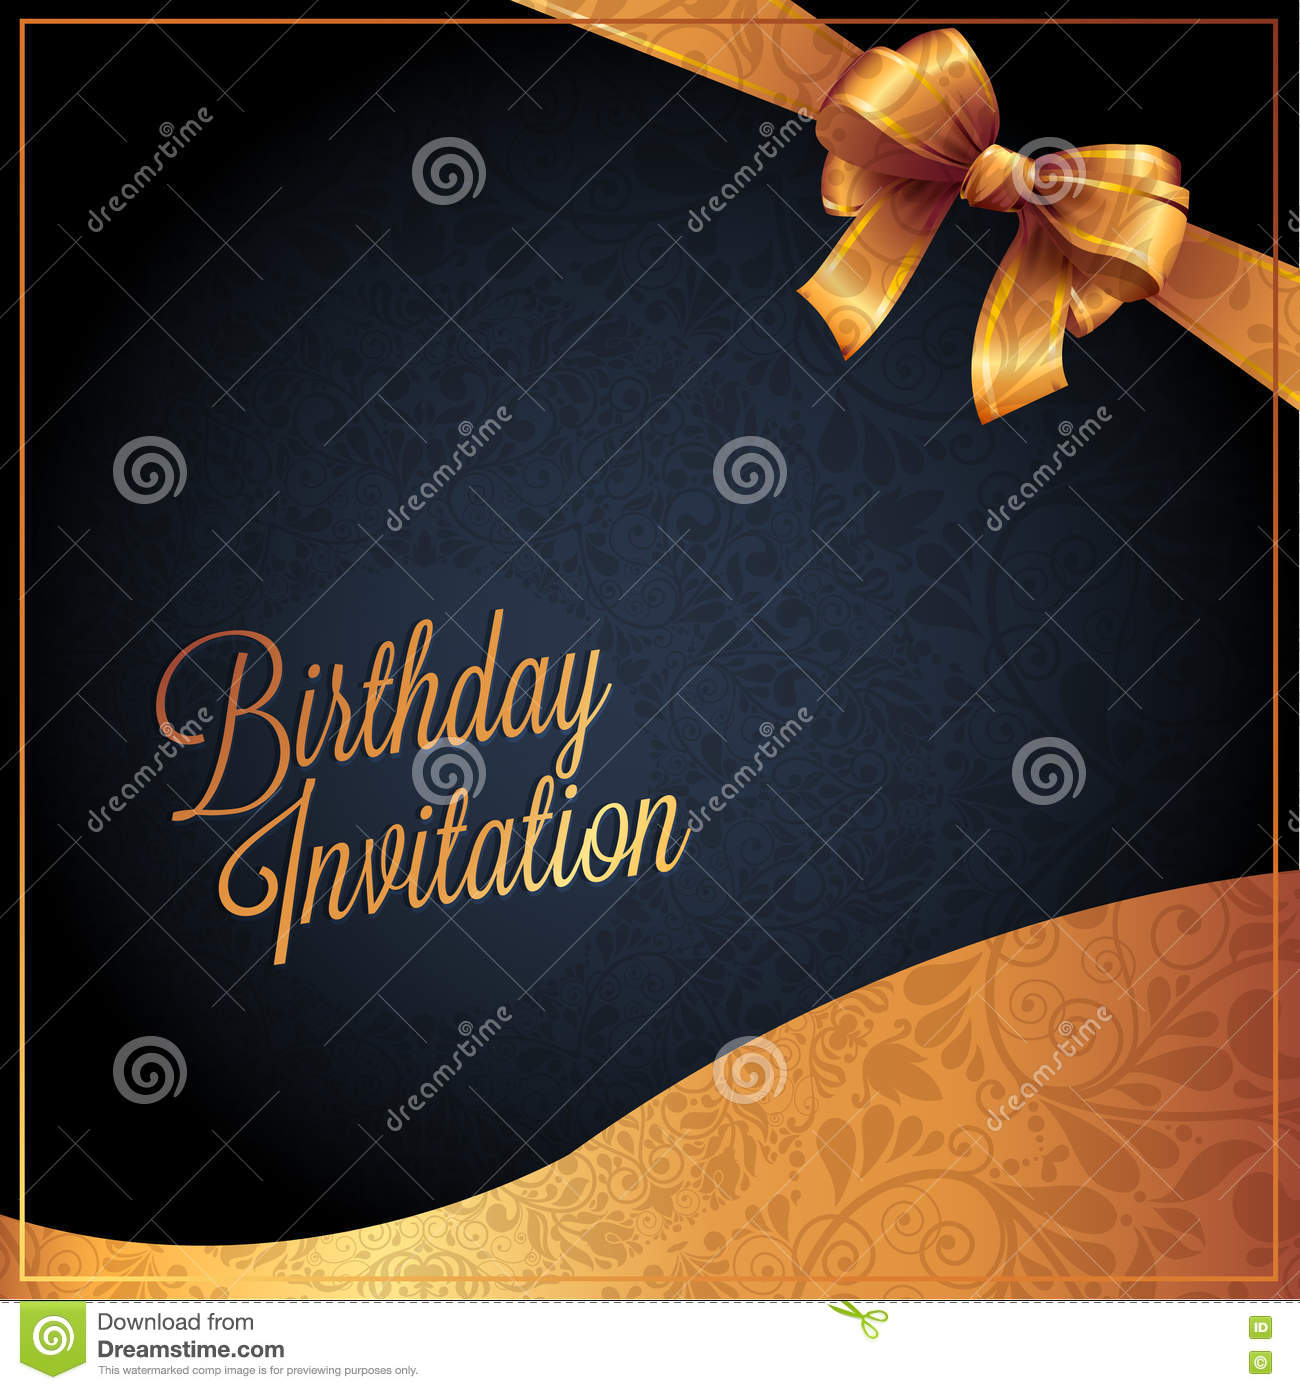 Birthday card with black background design stock vector birthday card with black background design royalty free vector bookmarktalkfo Images